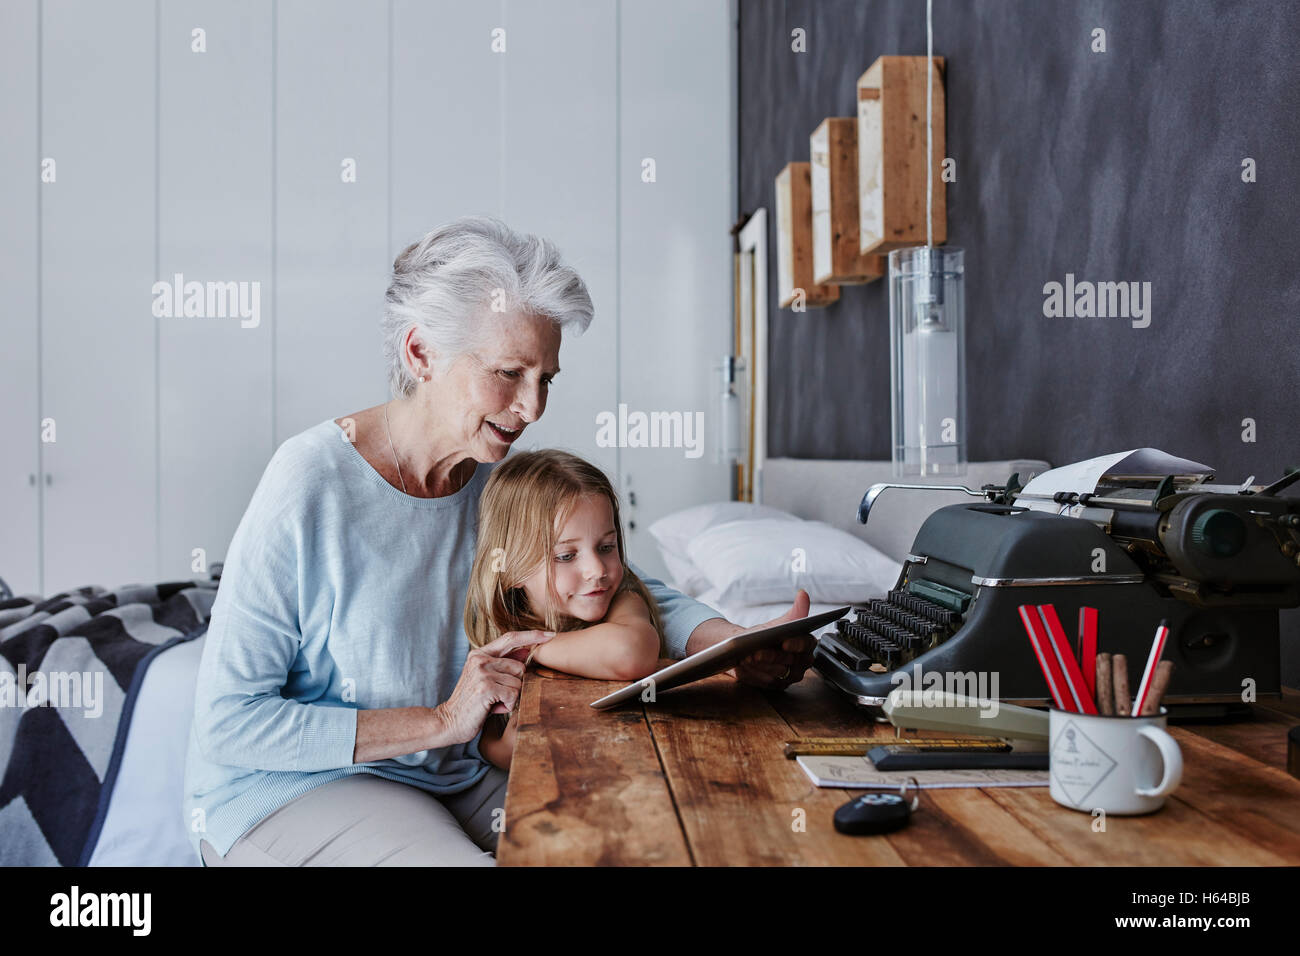 Nonna e nipote guardando tablet a casa Foto Stock